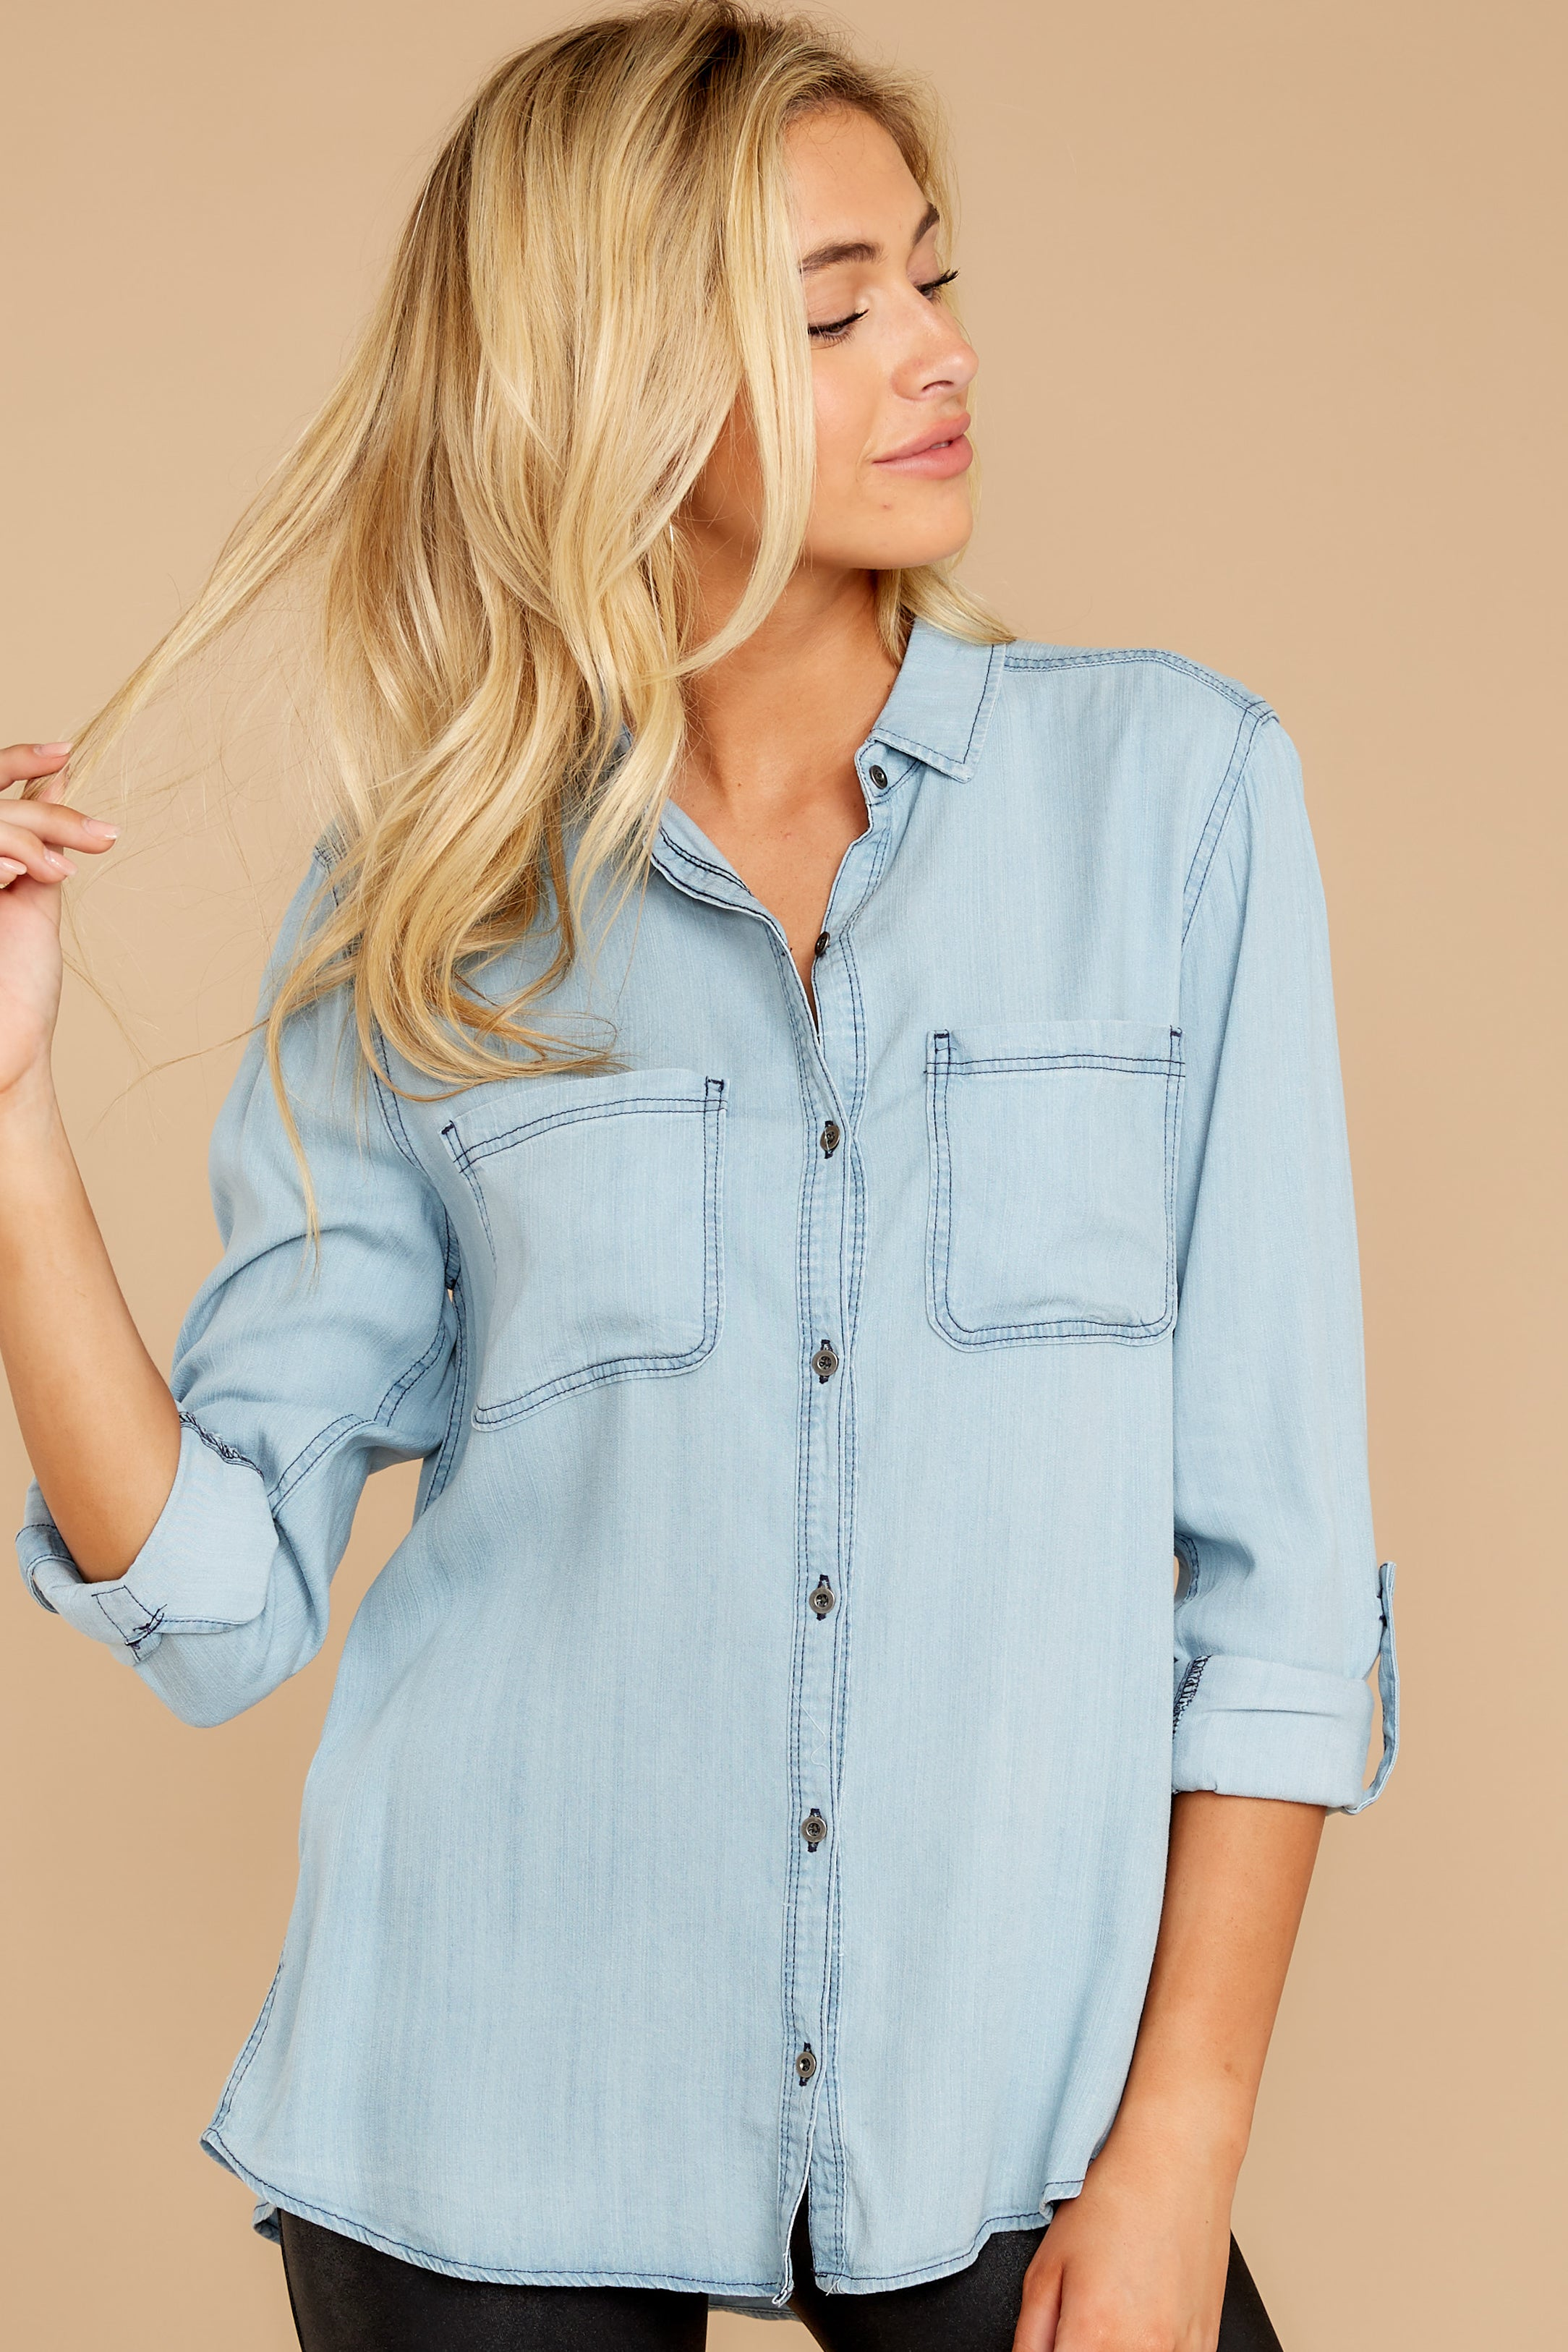 7 Wander Free Light Chambray Button Up Top at reddressboutique.com